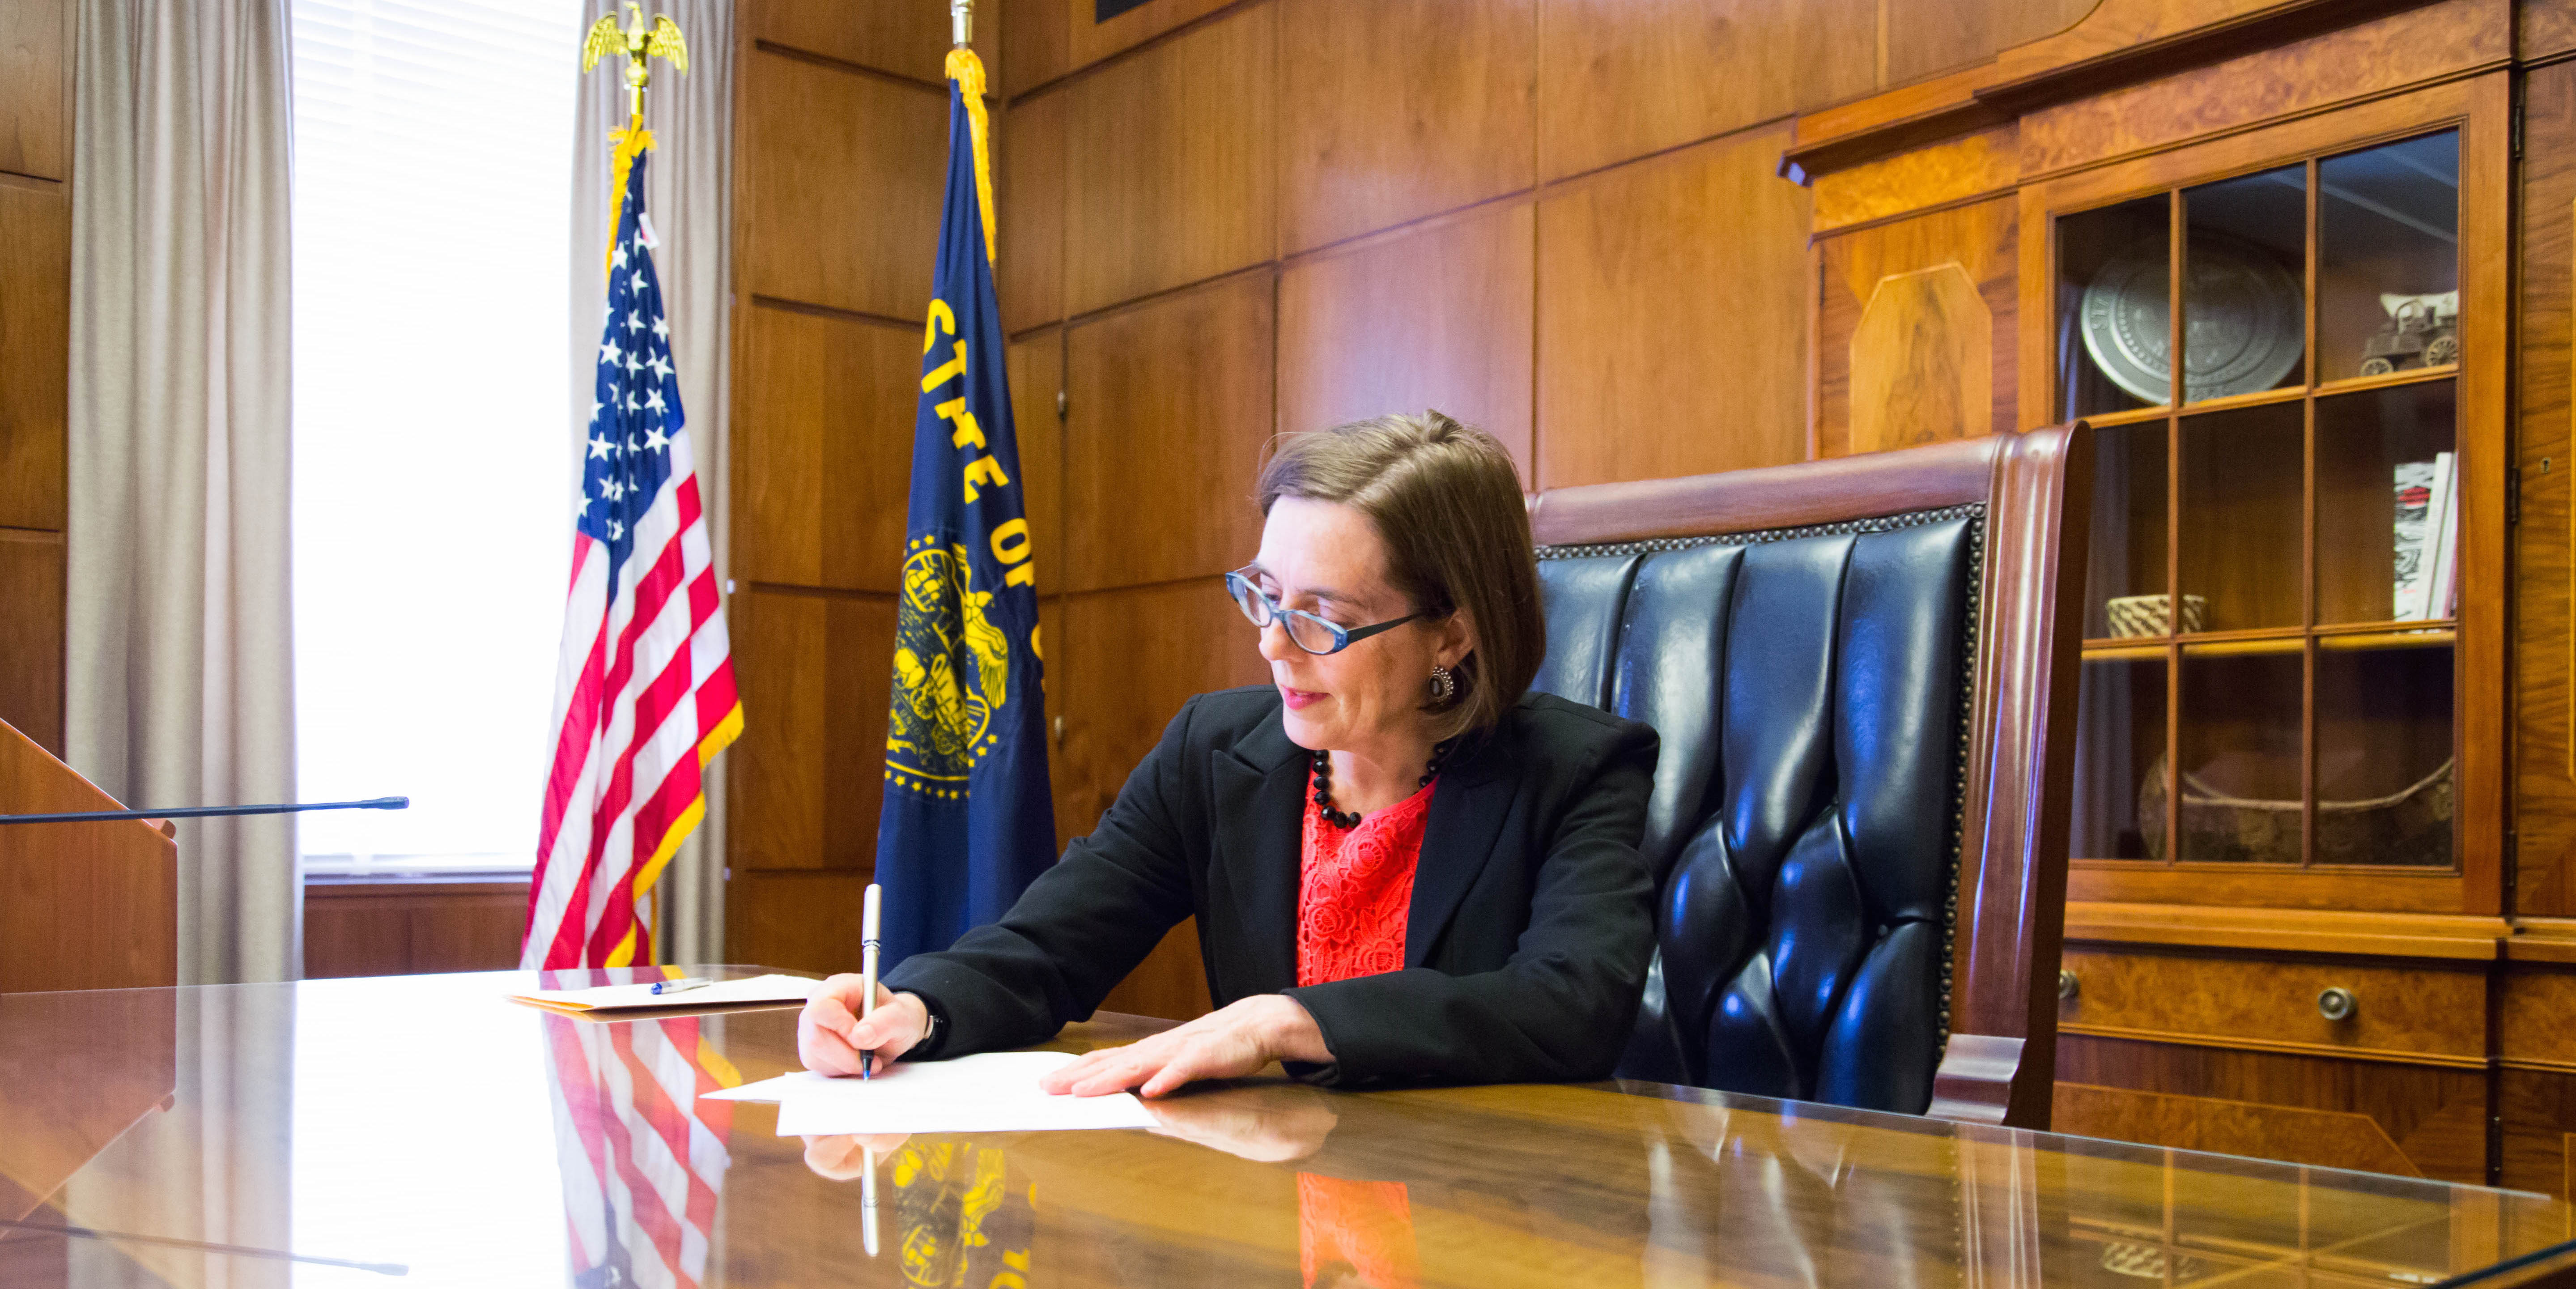 Redacted roundup: winners and losers in Oregon